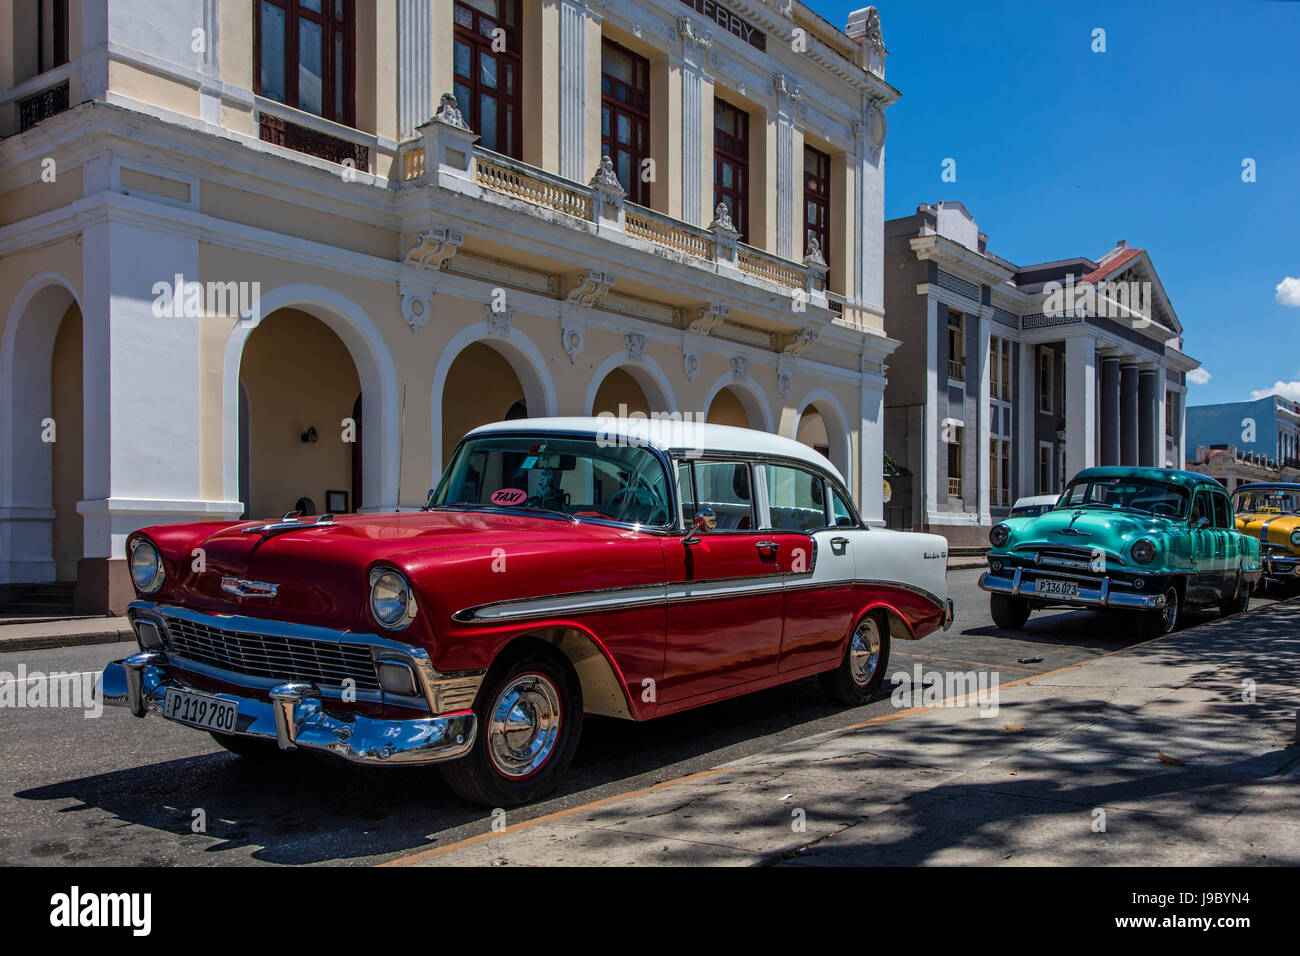 Classic American Cars in front of TEATRO TOMAS TERRY built in 1887 ...